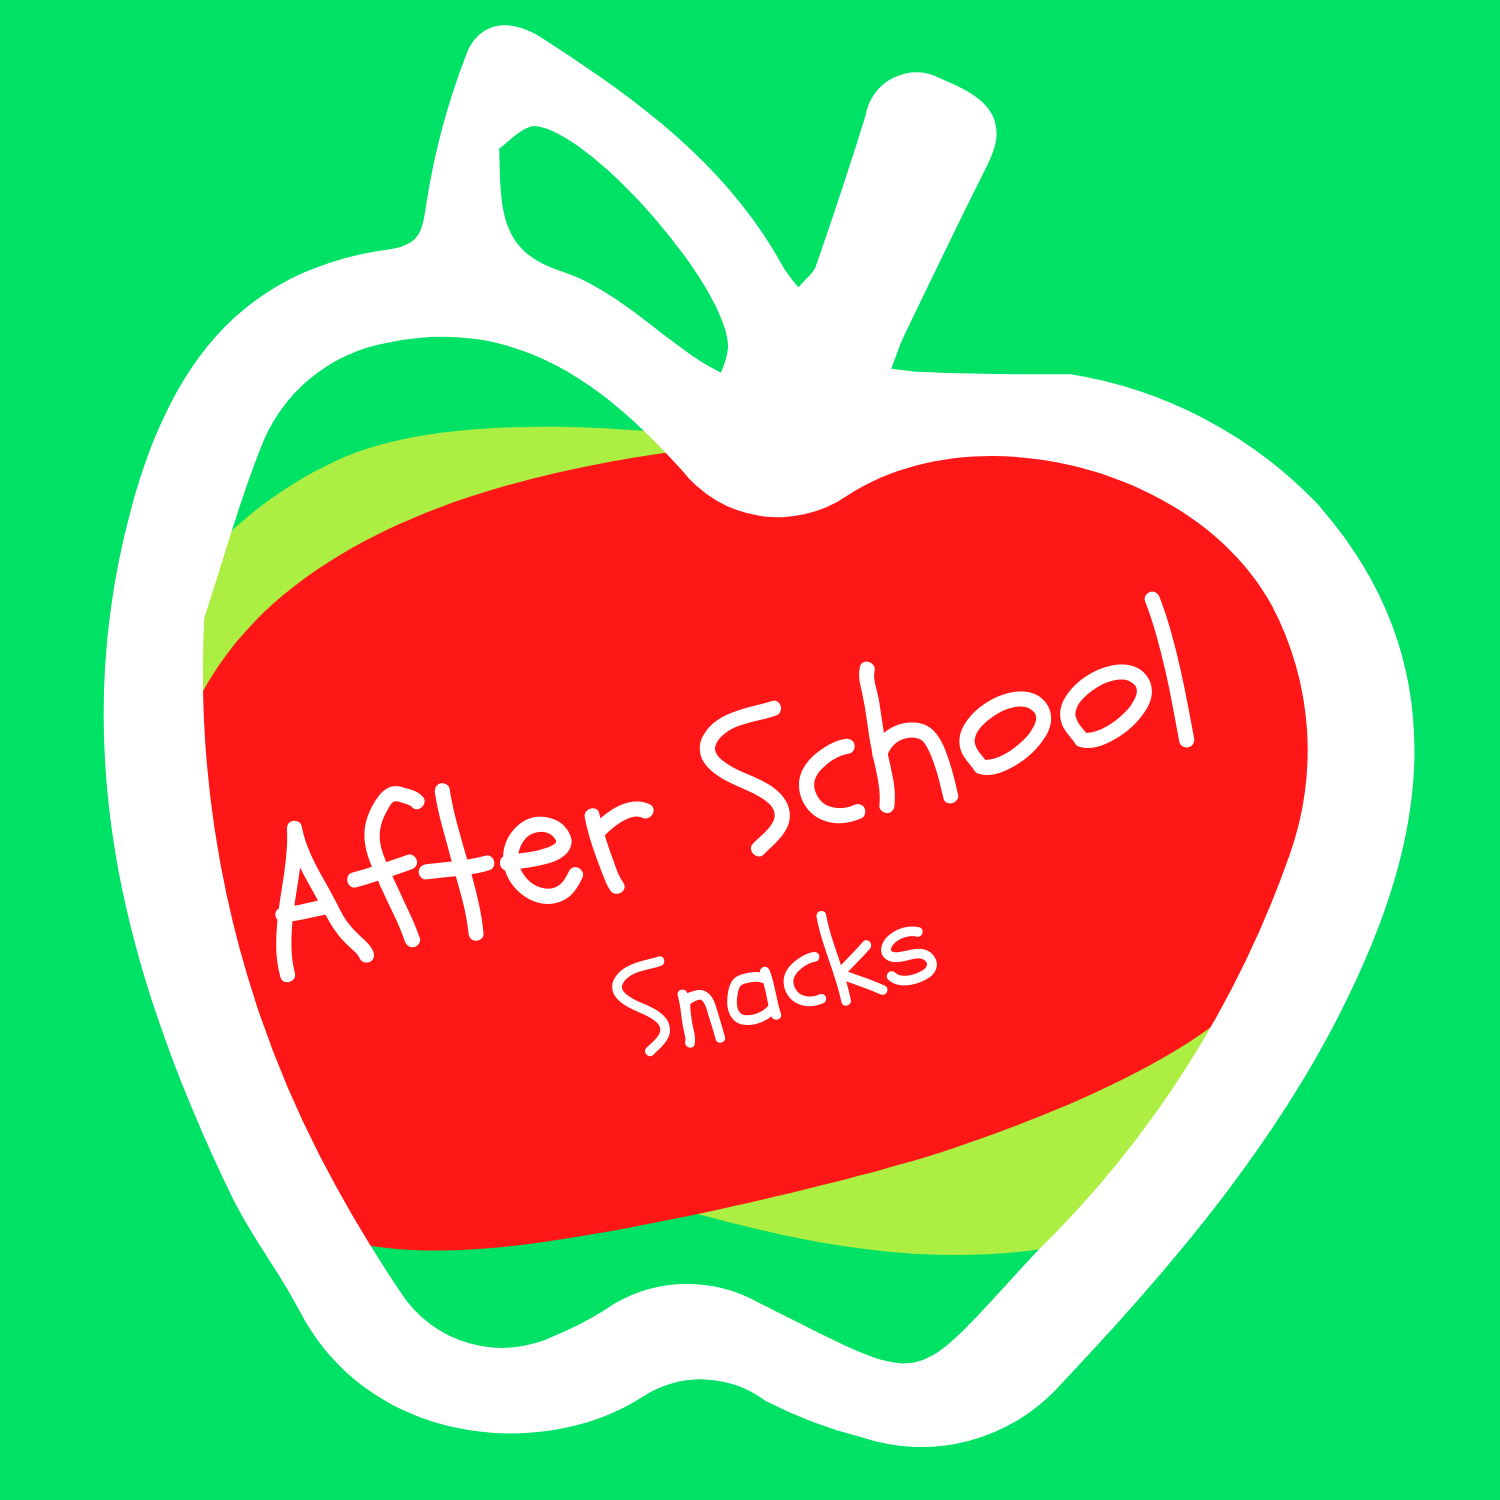 After School Snack Info